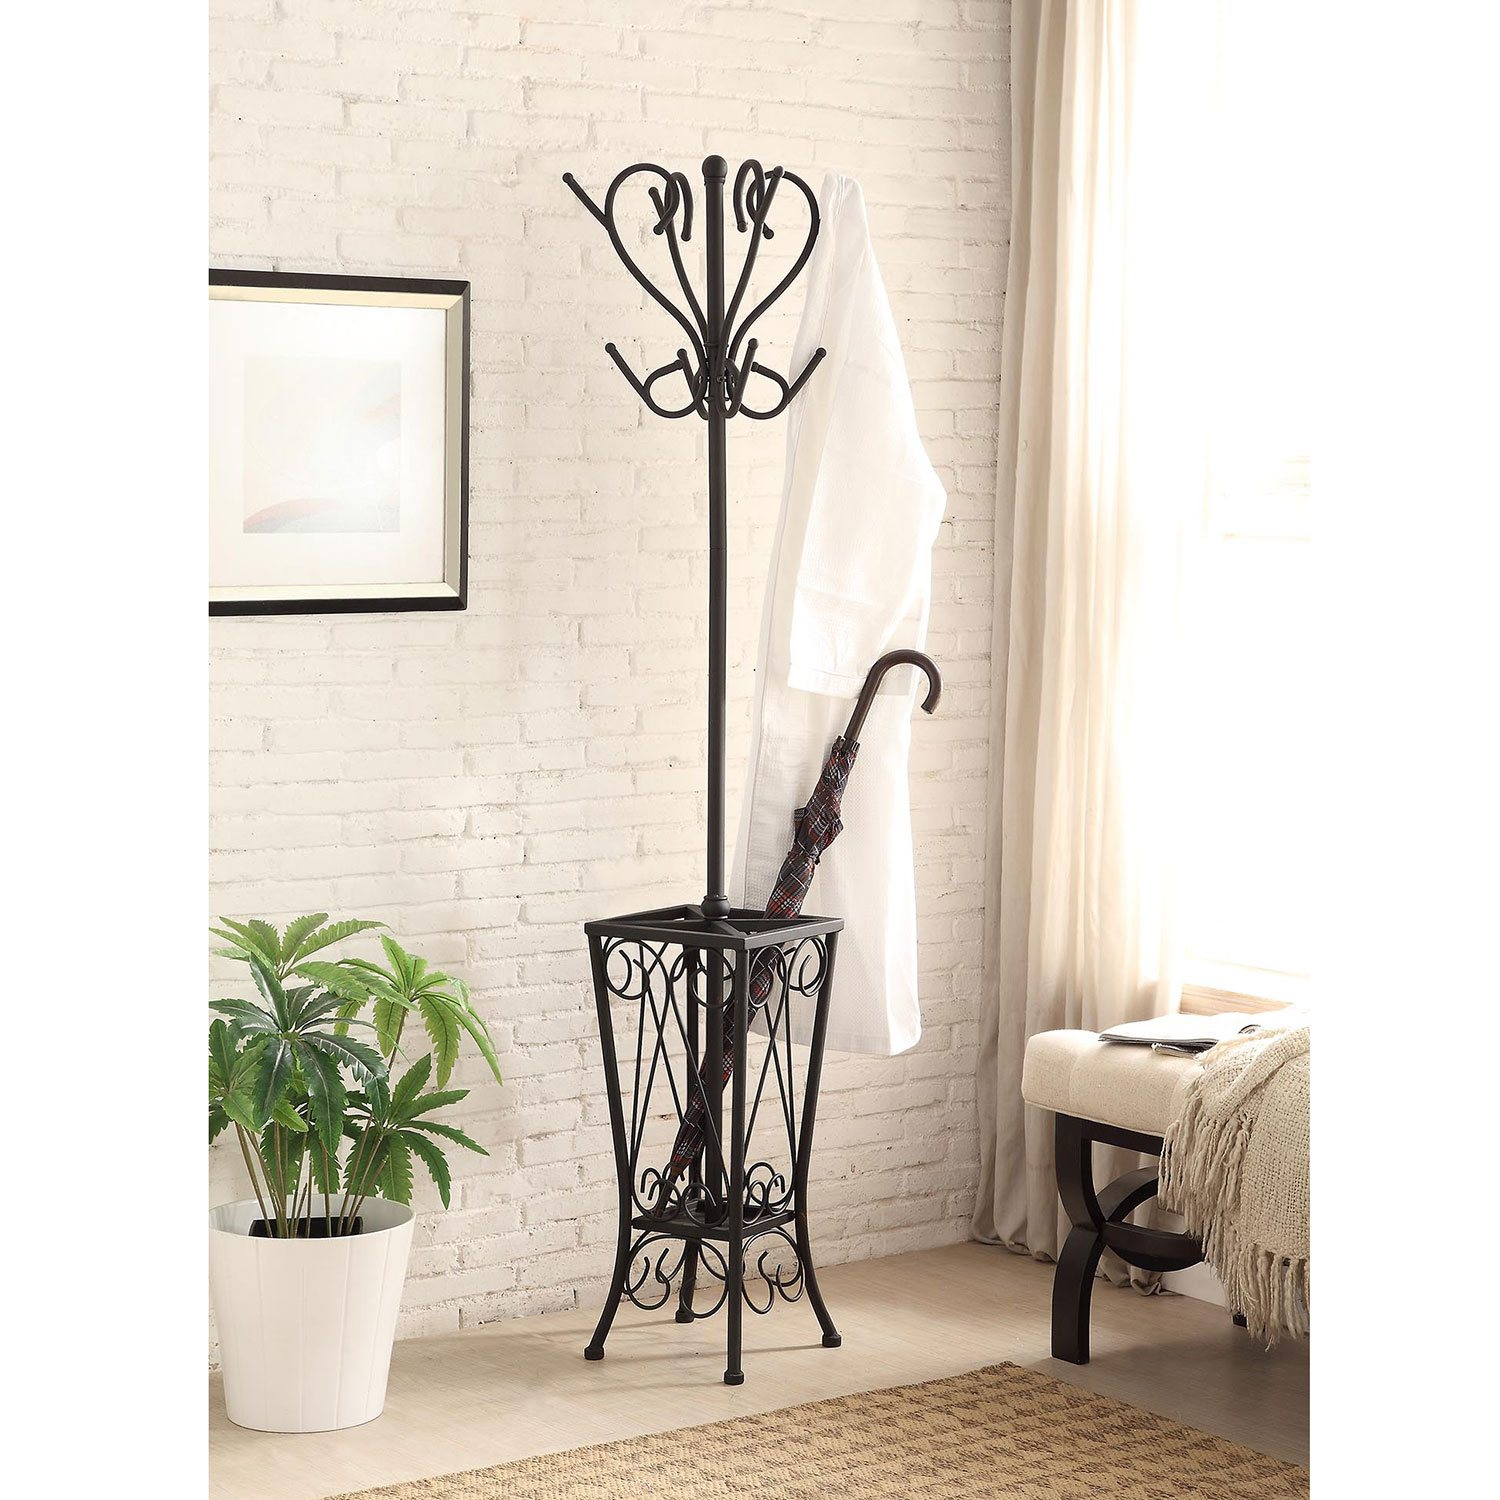 Ikea Godmorgon Odensvik Plumbing ~   Elegant Coat Rack Hall with Umbrella Stand by Kipling BRAND NEW  eBay